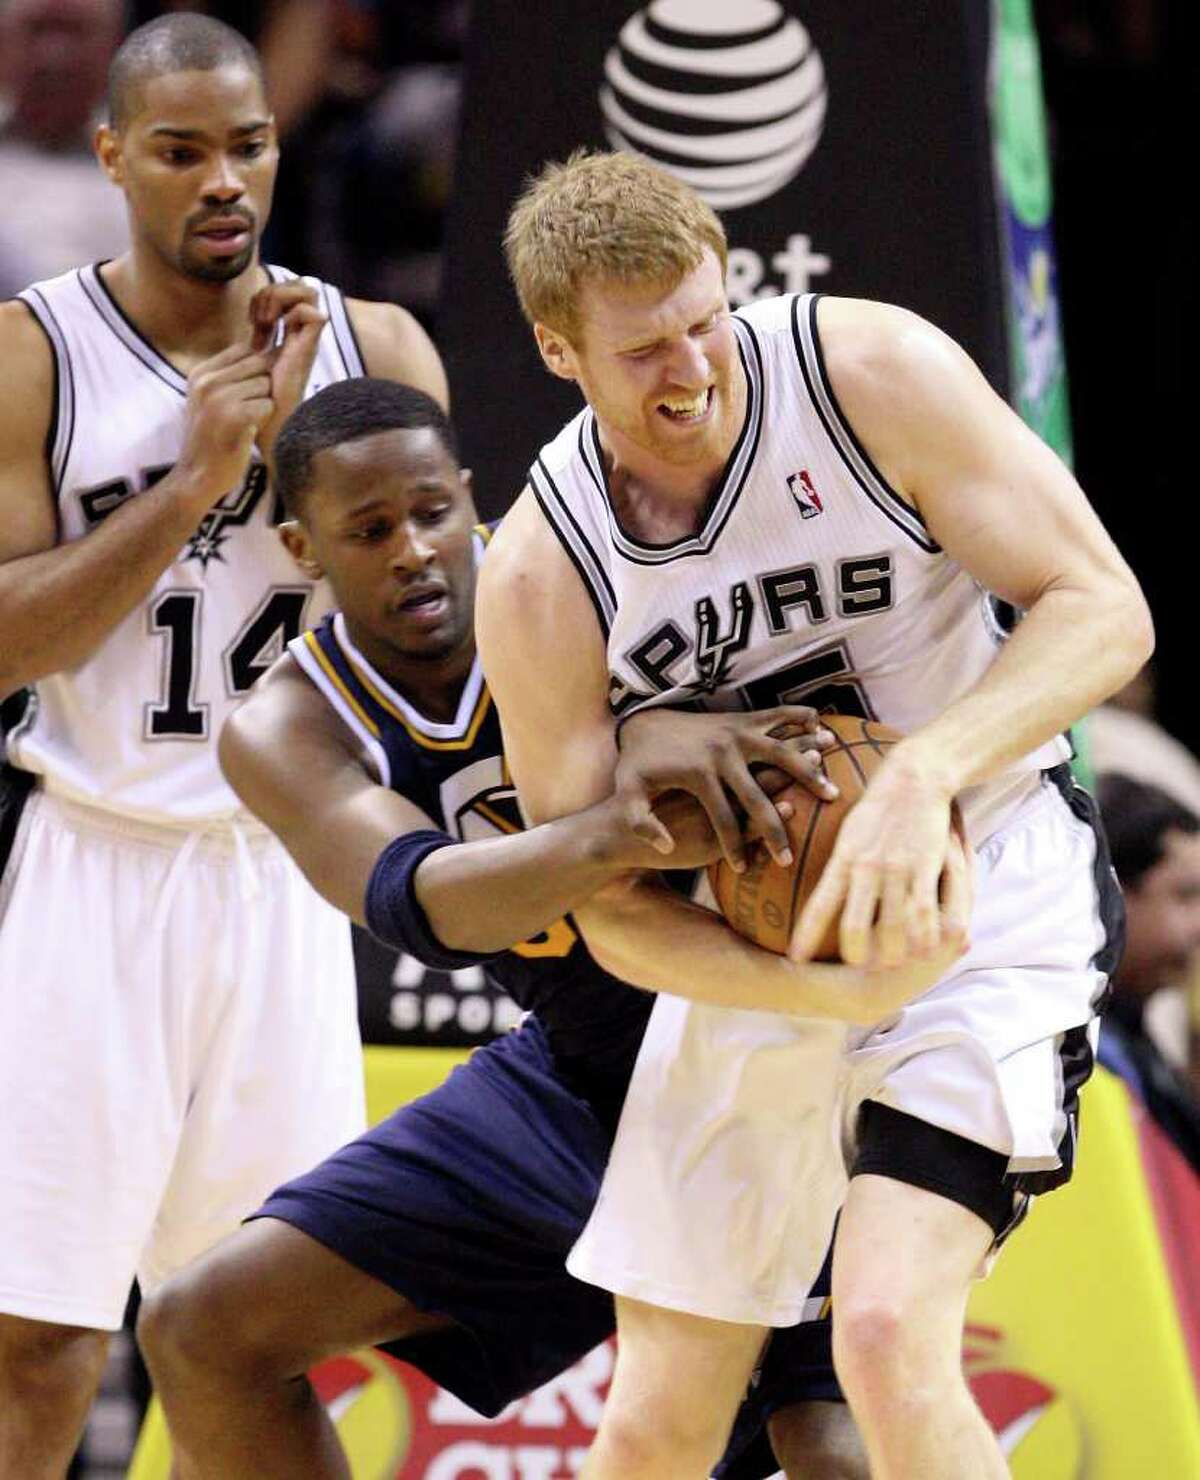 Spurs' Matt Bonner and Jazz's C.J. Miles struggle for control of the ball as Spurs' Gary Neal looks on during second half action Saturday April 9, 2011 at the AT&T Center. The Spurs won 111-102. (PHOTO BY EDWARD A. ORNELAS/eaornelas@express-news.net)